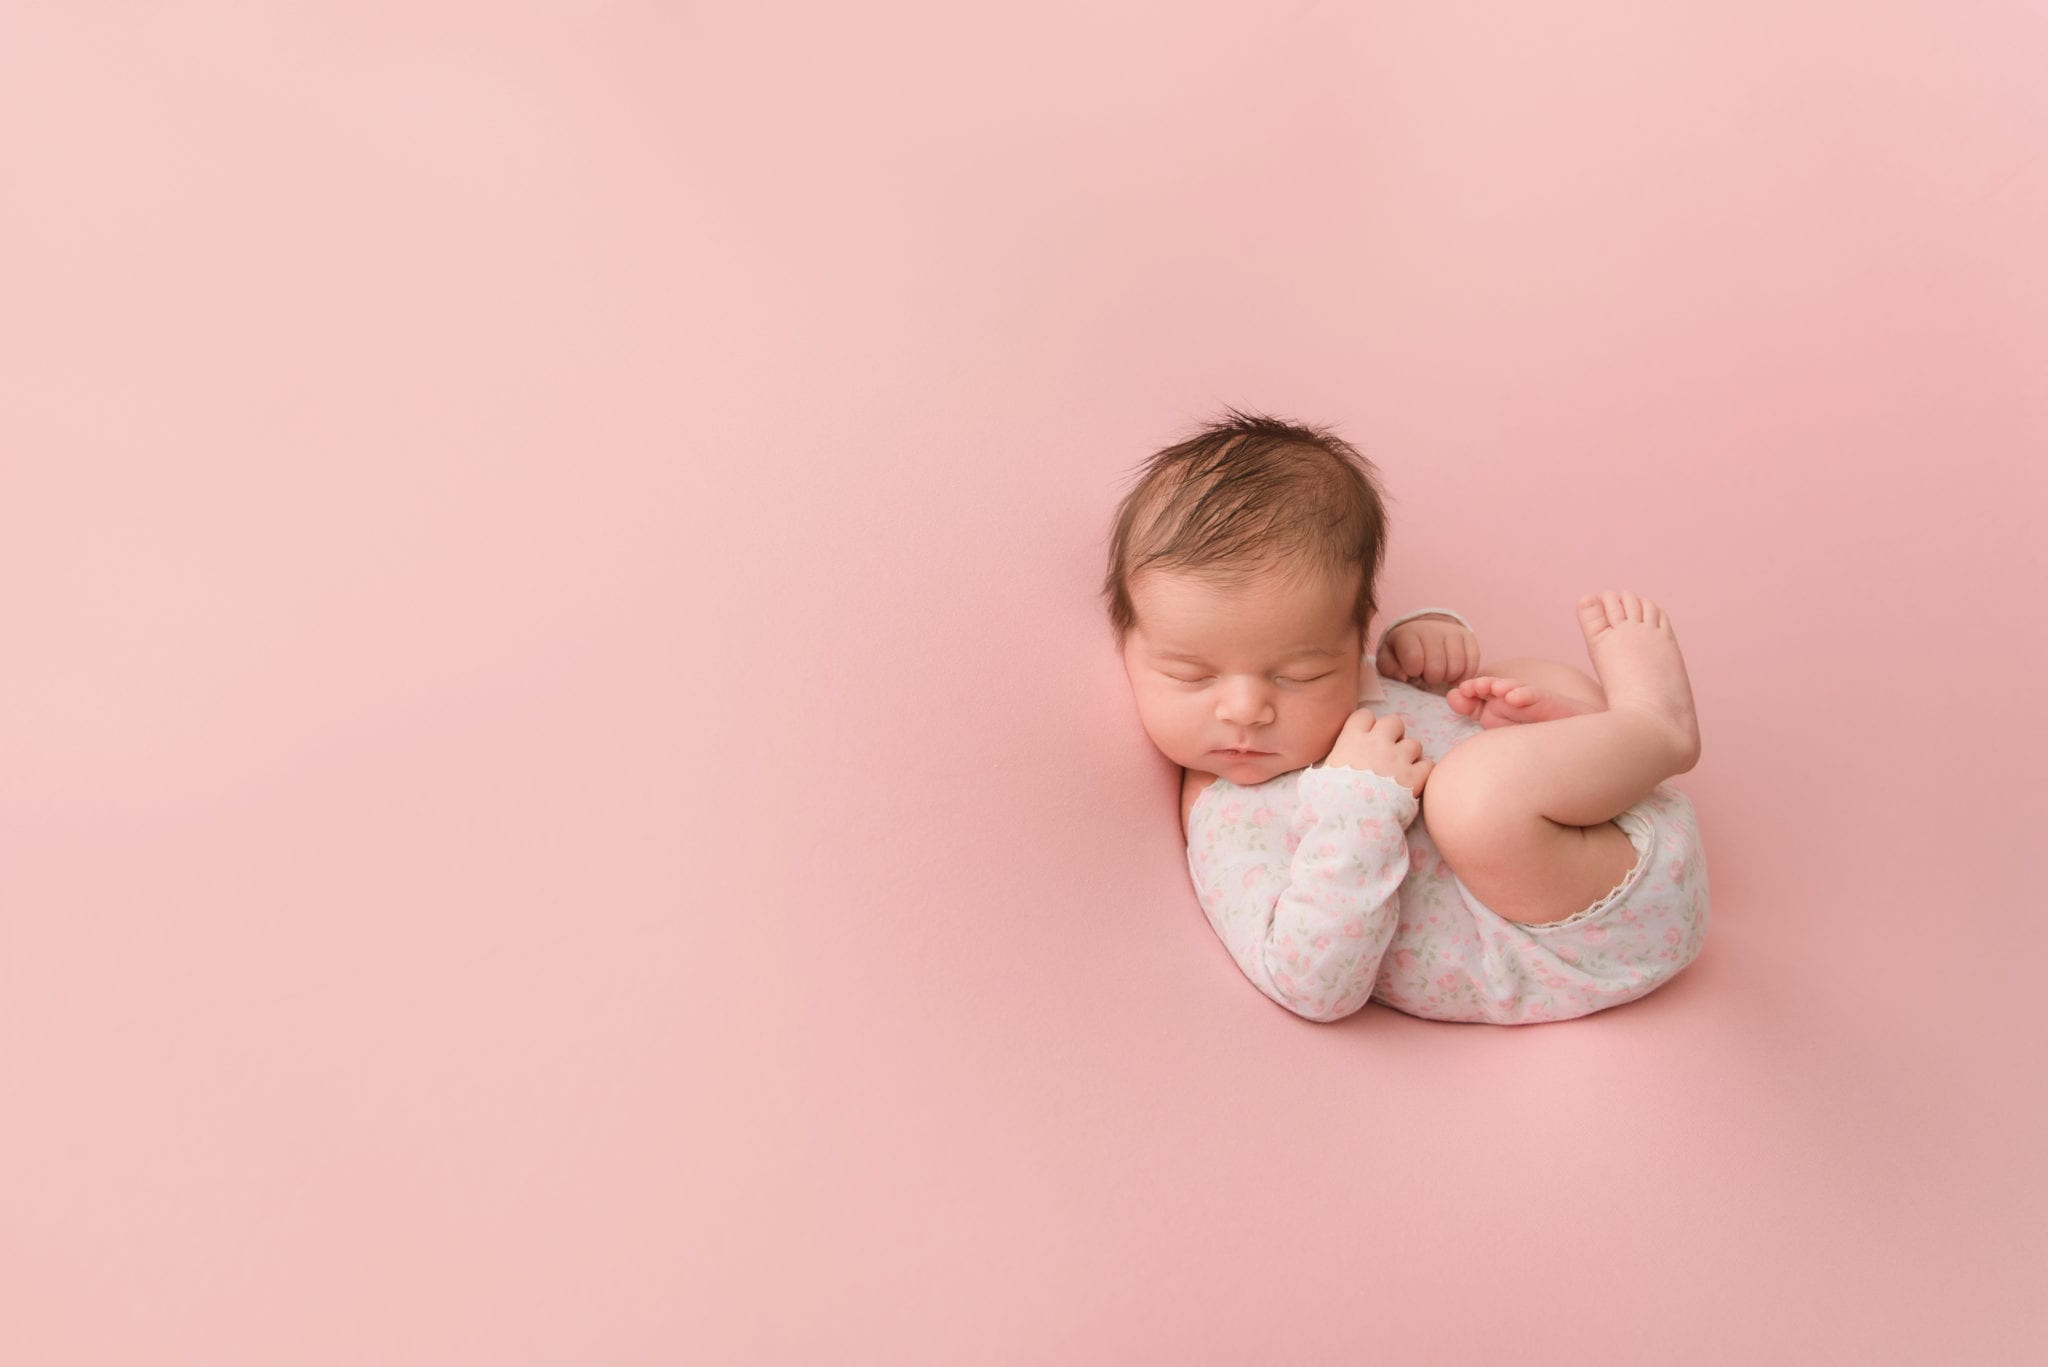 Infant photography studio loveland